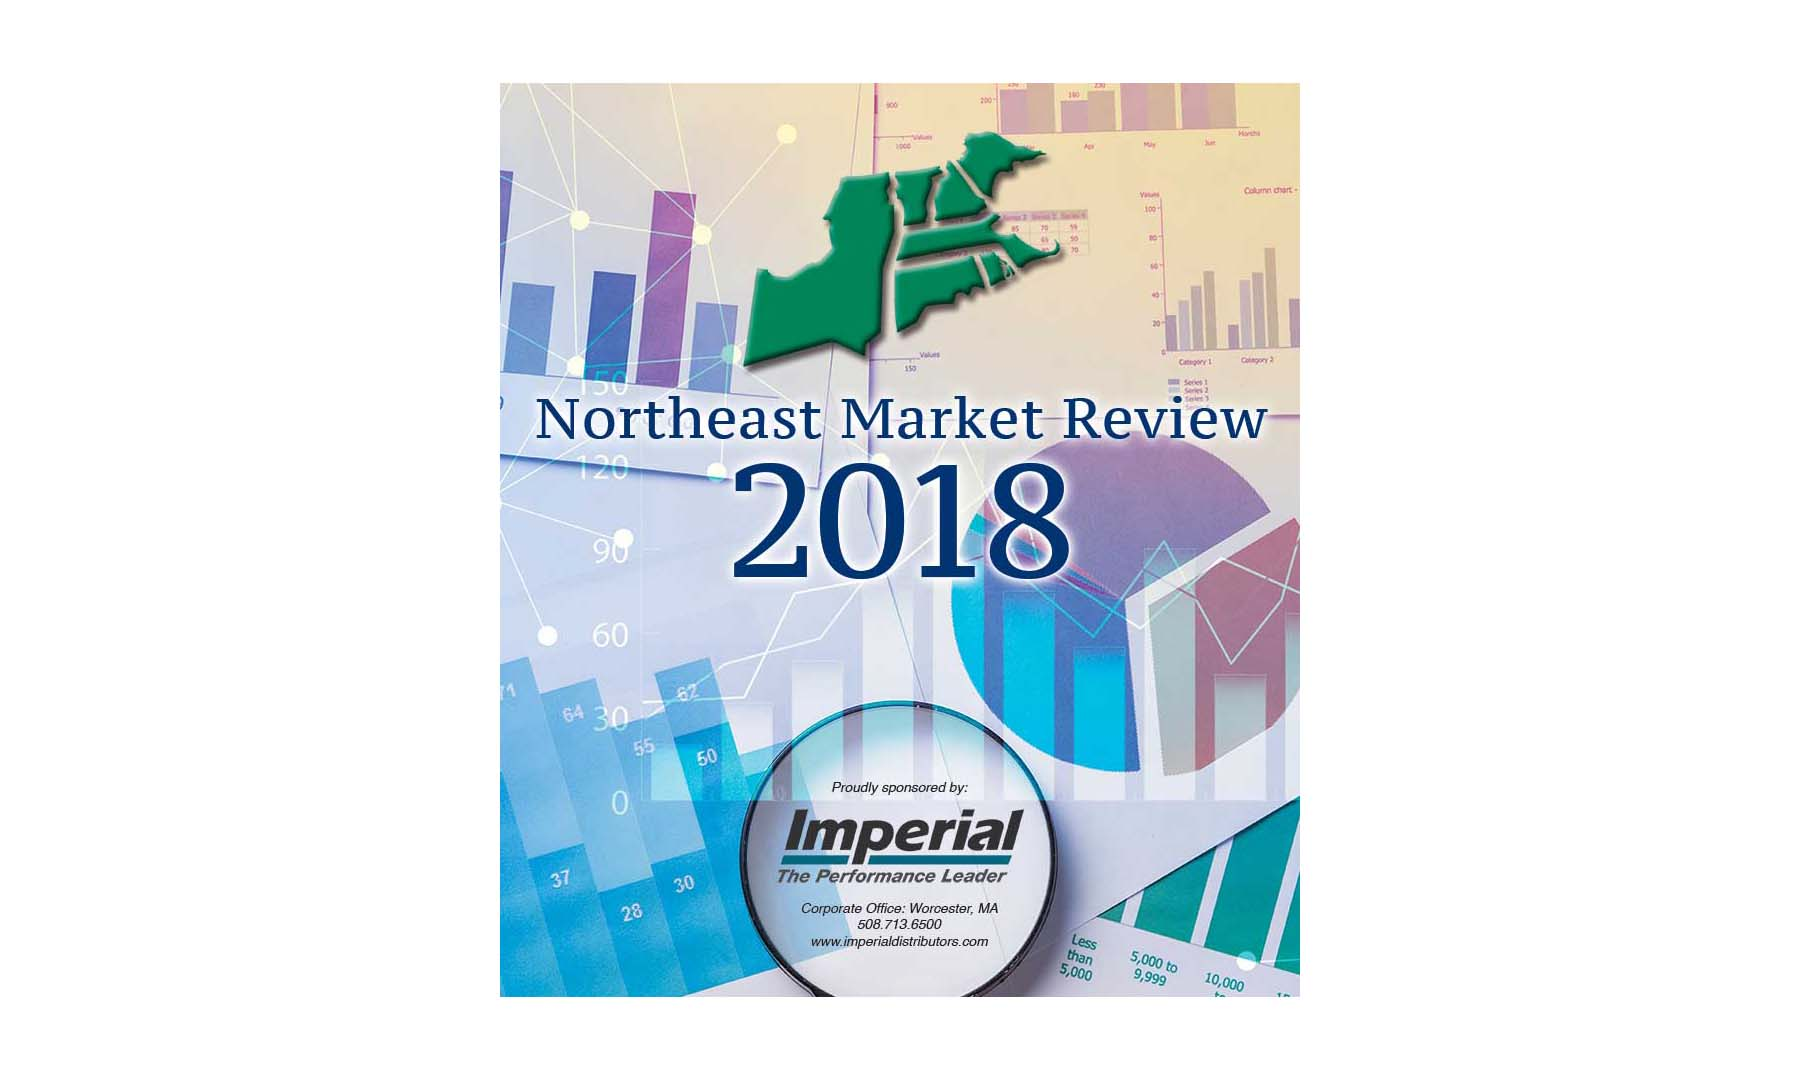 The cover of the 2018 Northeast Market Review.